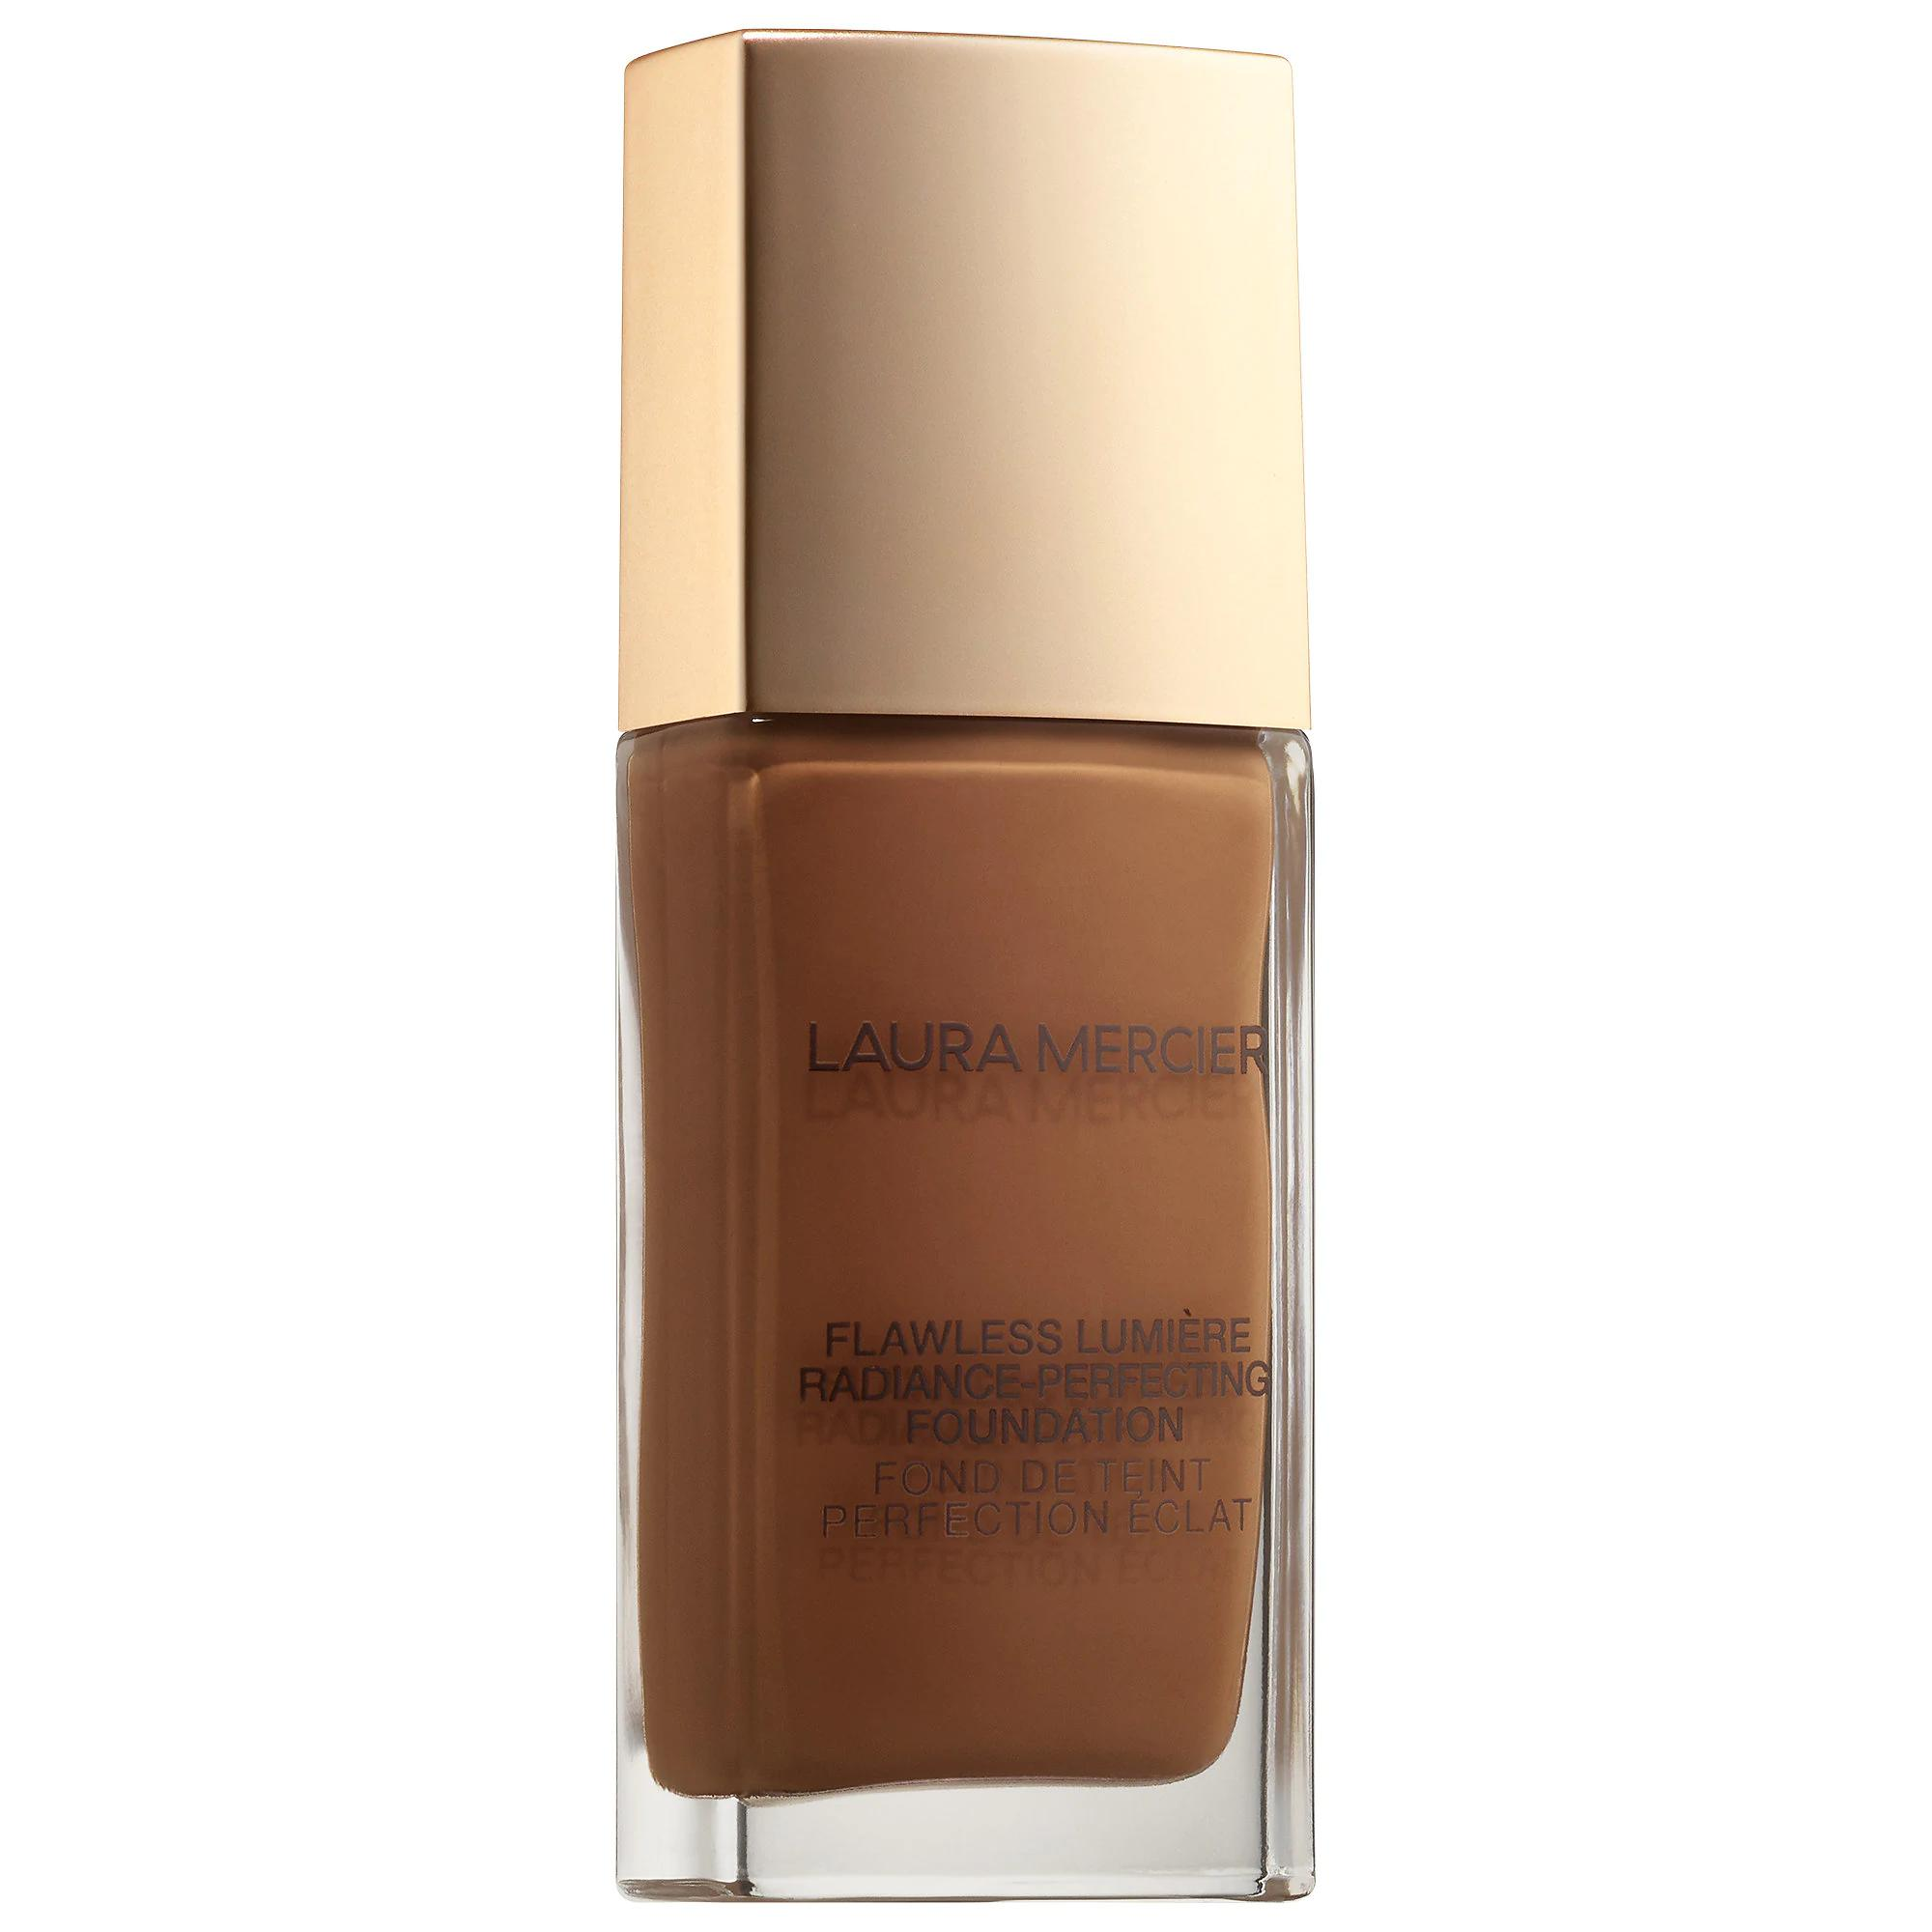 Laura Mercier Flawless Lumiere Radiance-Perfecting Foundation Ganache 6W1